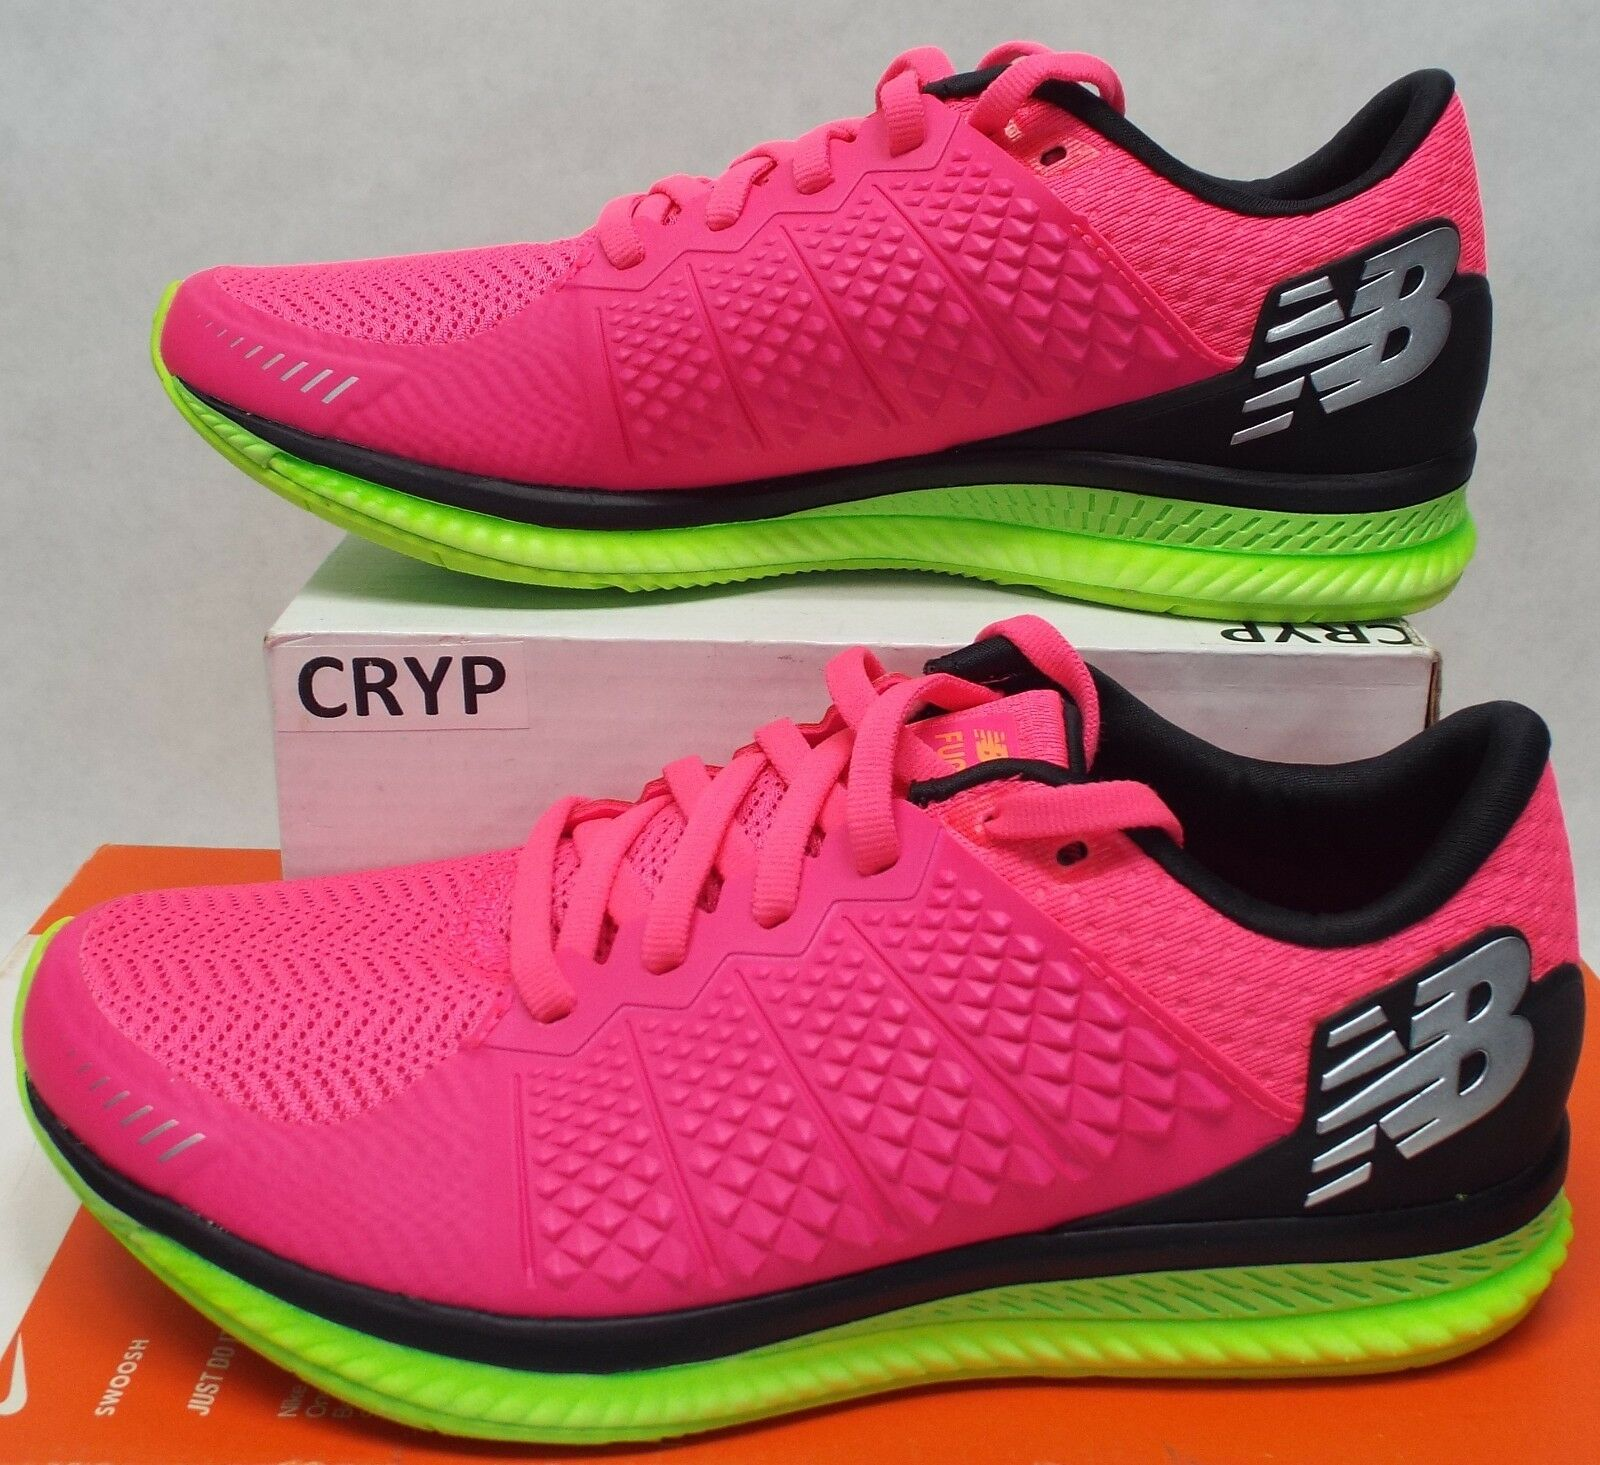 New New New Womens 6 New Balance Pink Lime Fuel Cell shoes  110 WFLCLLP 6534b9